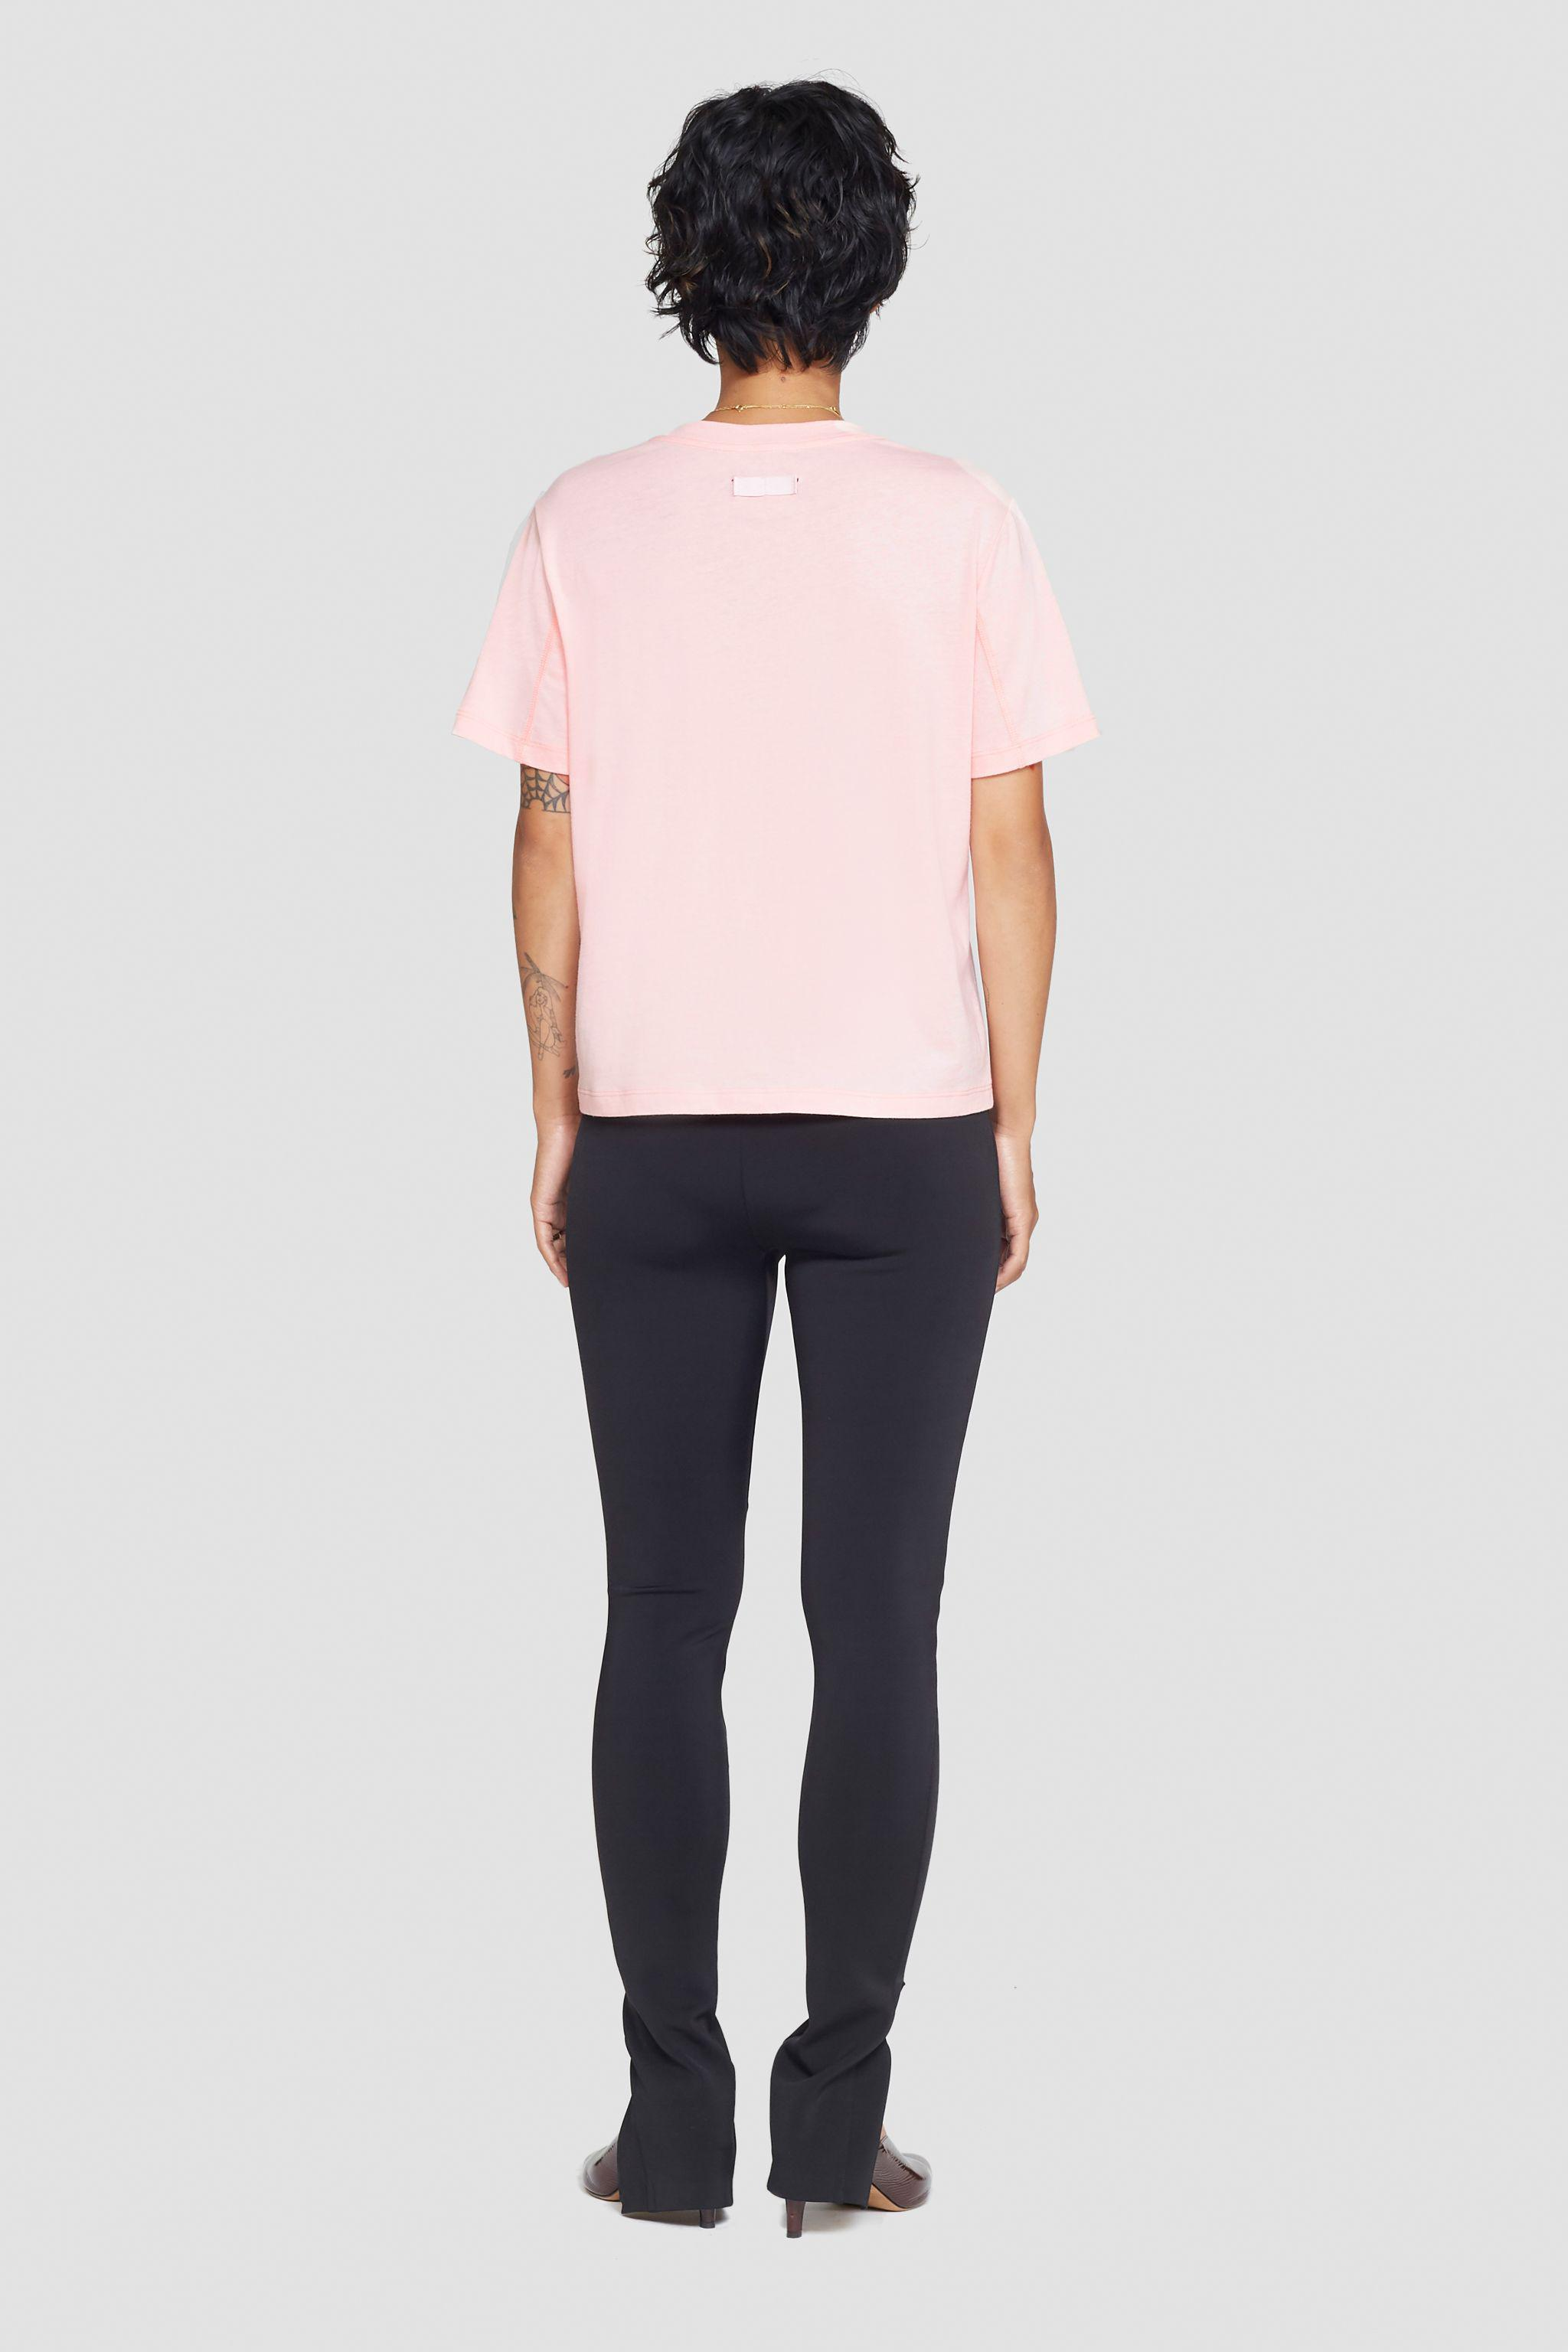 The Essential Tee 2